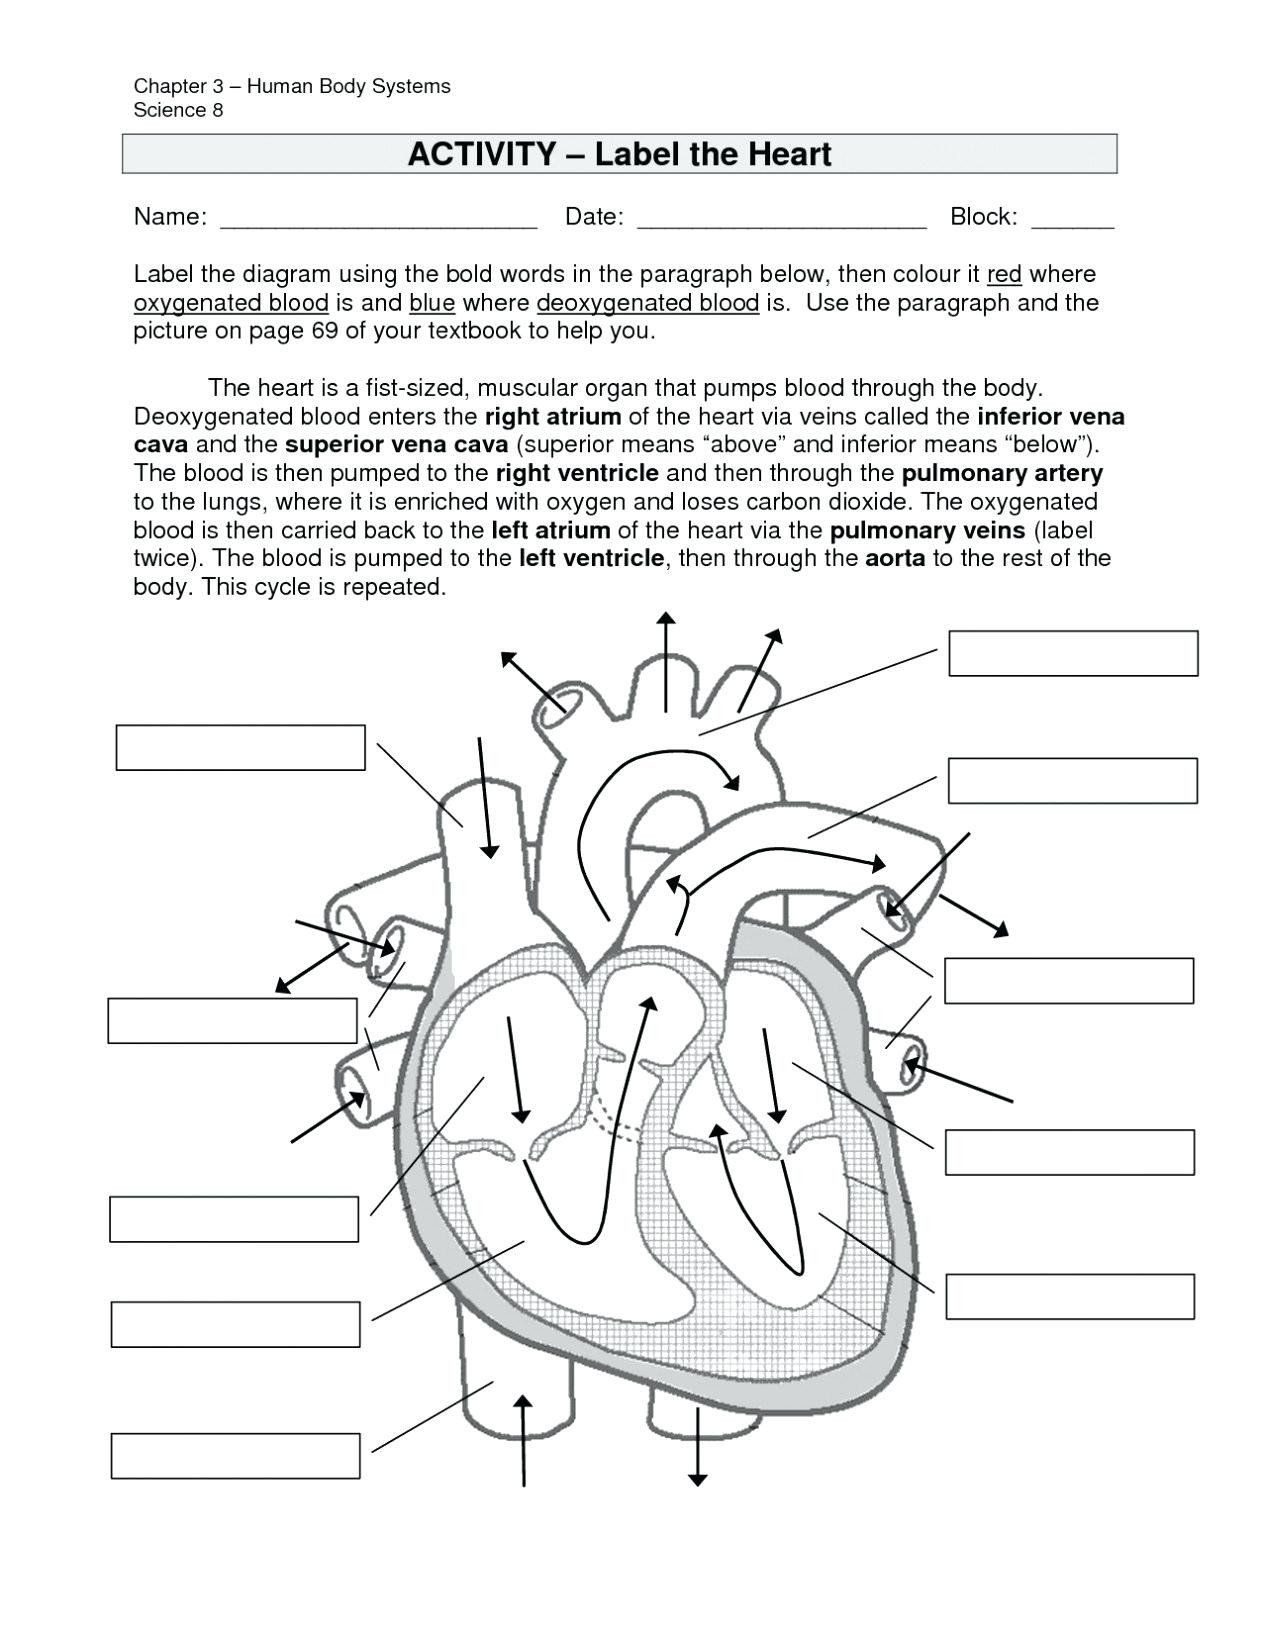 Cell Cycle Coloring Worksheet the Cell Cycle Coloring Worksheet Answer Key Inspirational